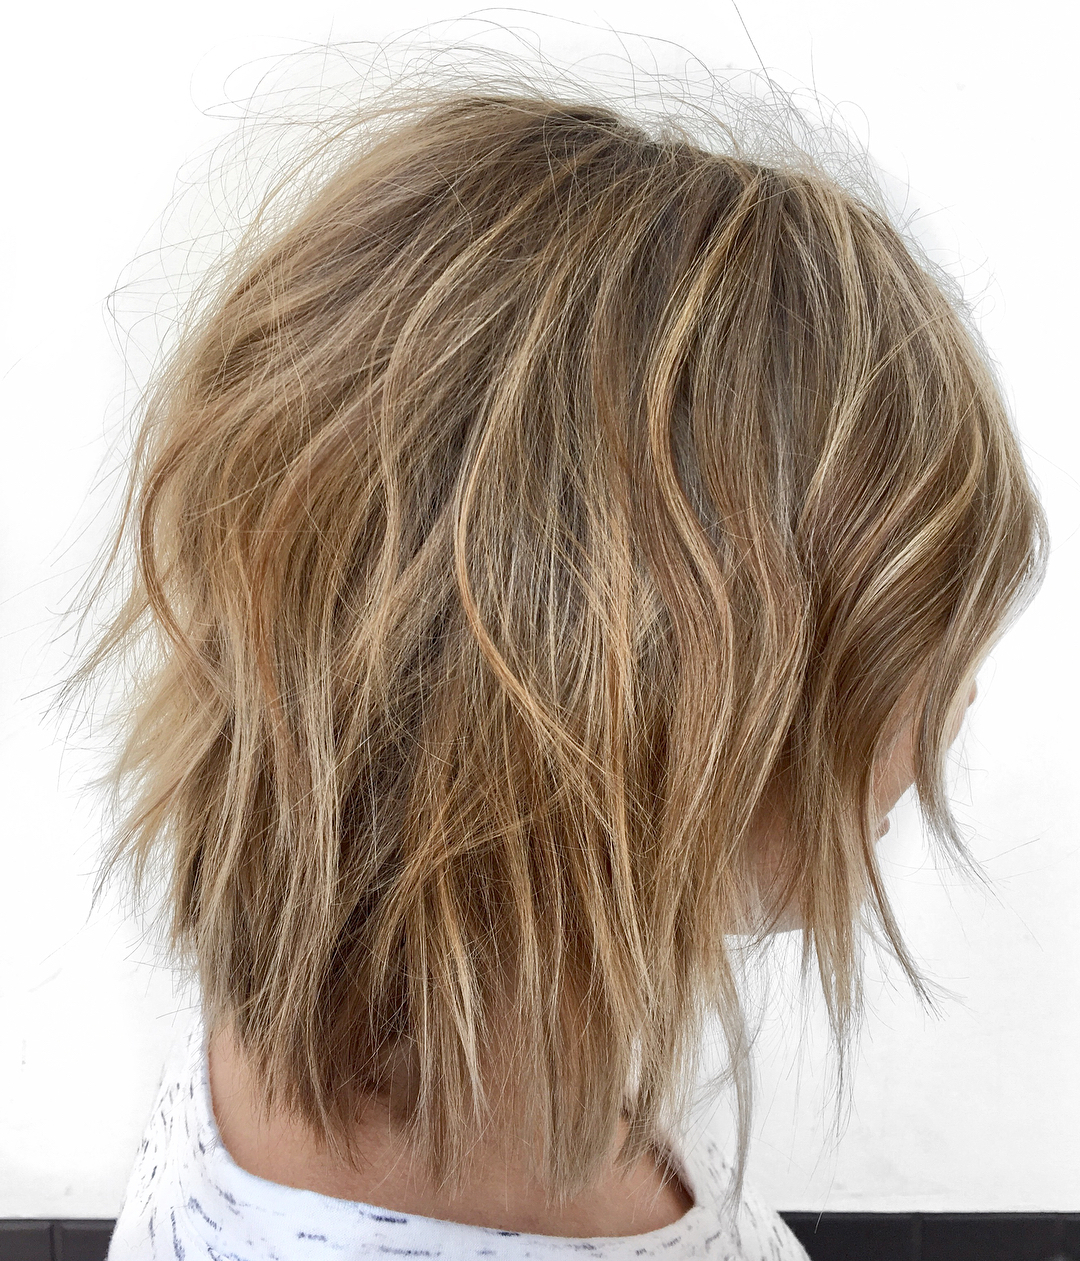 How To Pull Off Medium Length Haircuts And Hairstyles In 2019 Inside Bronde Bob Shag Haircuts With Short Back (View 12 of 20)